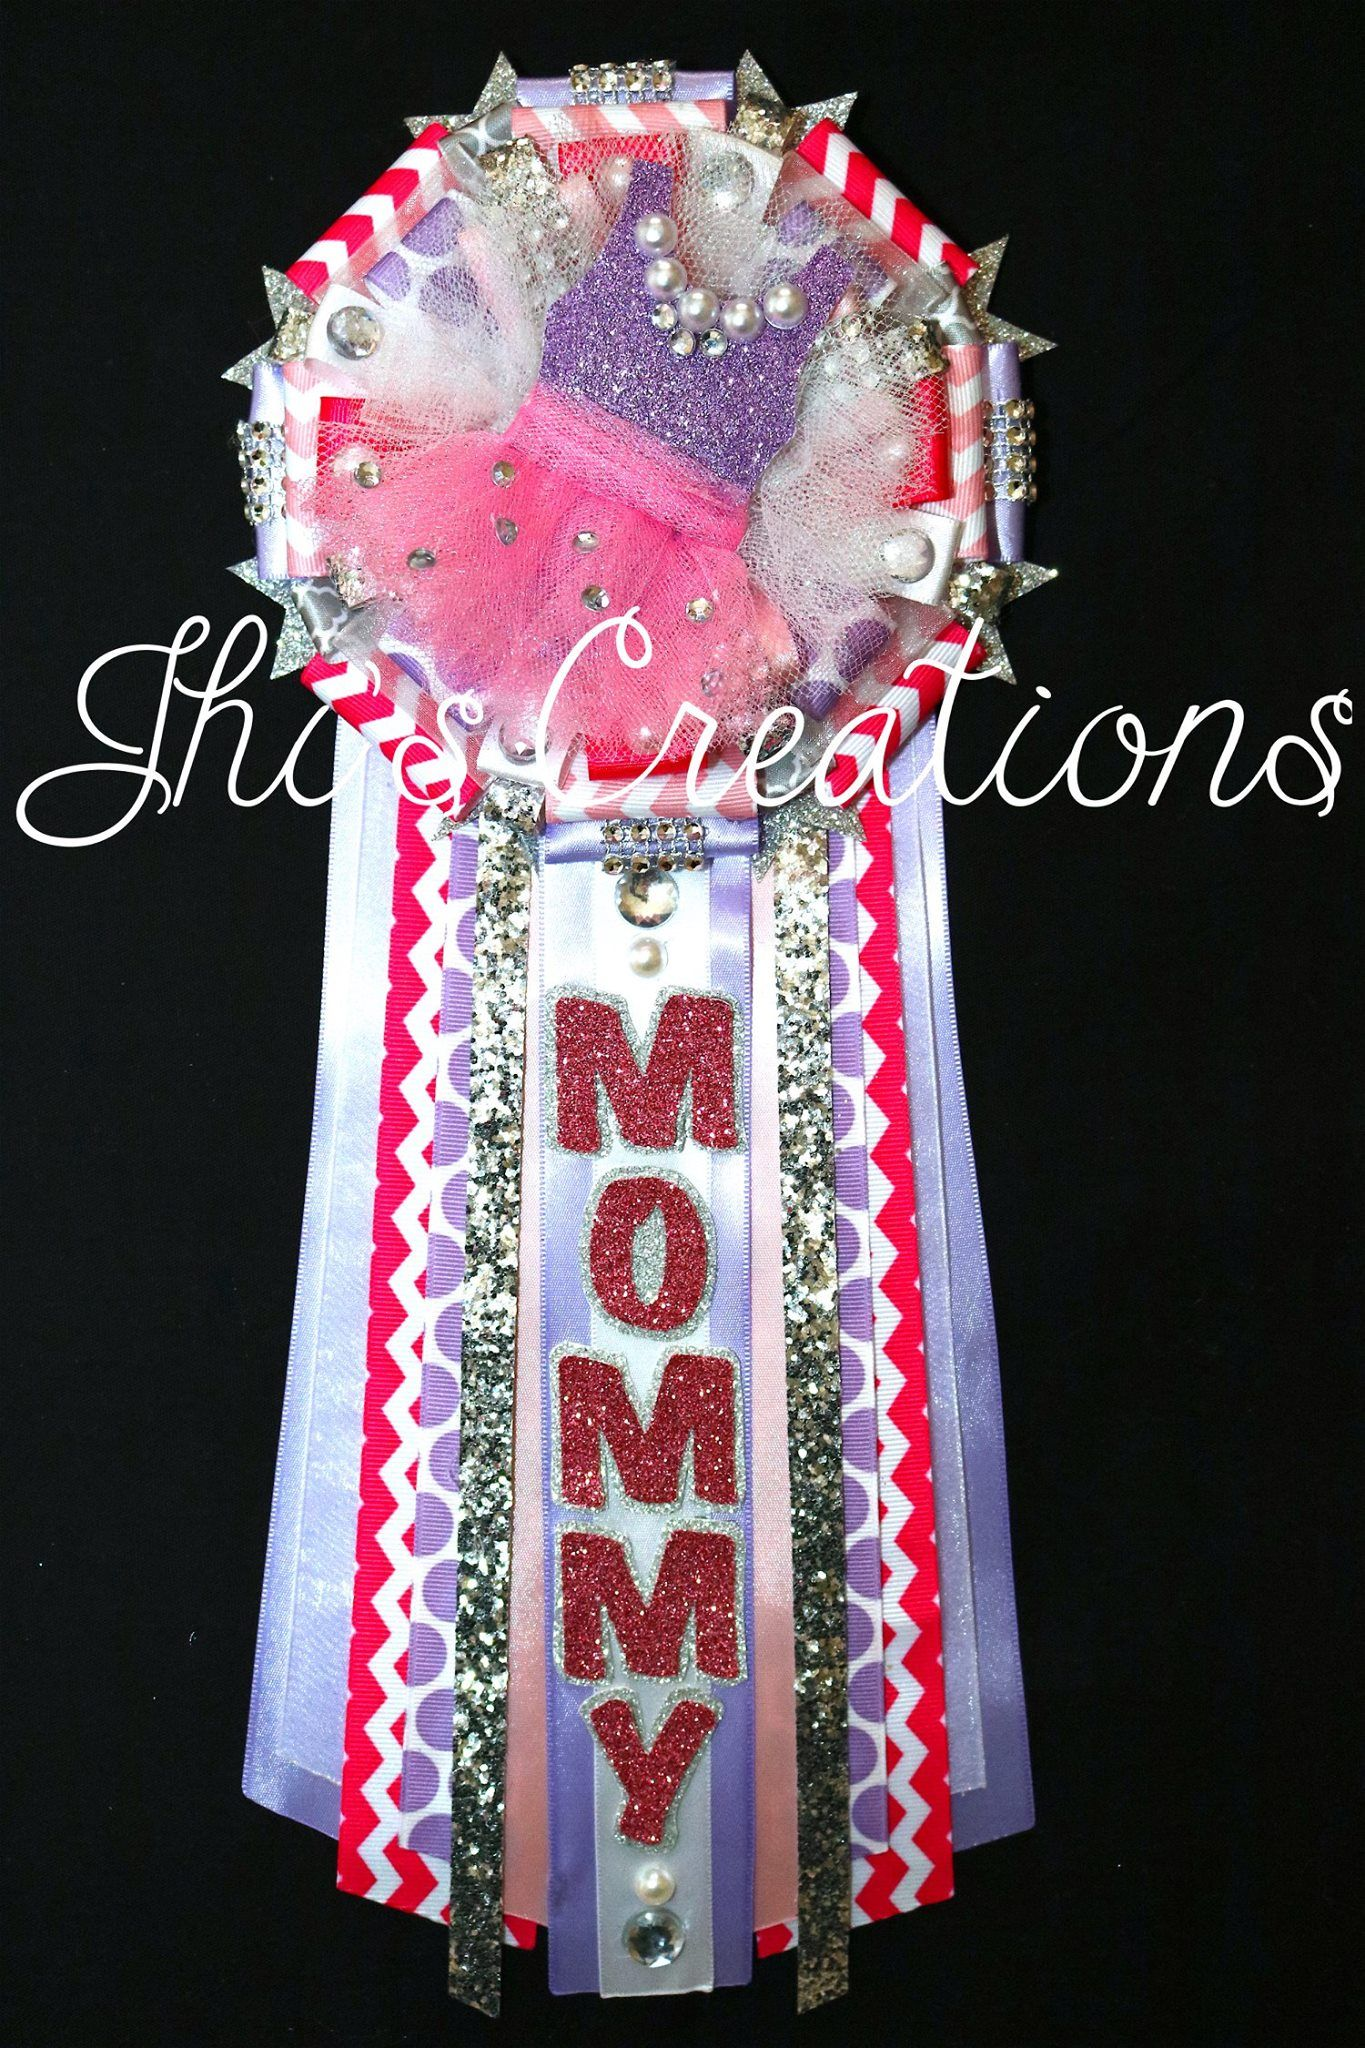 Amazing Tutu Themed Baby Shower Pin/mum/corsage Set In Hot Pink, Lavender, Light  Pink, White, And Silver #JhisCreations